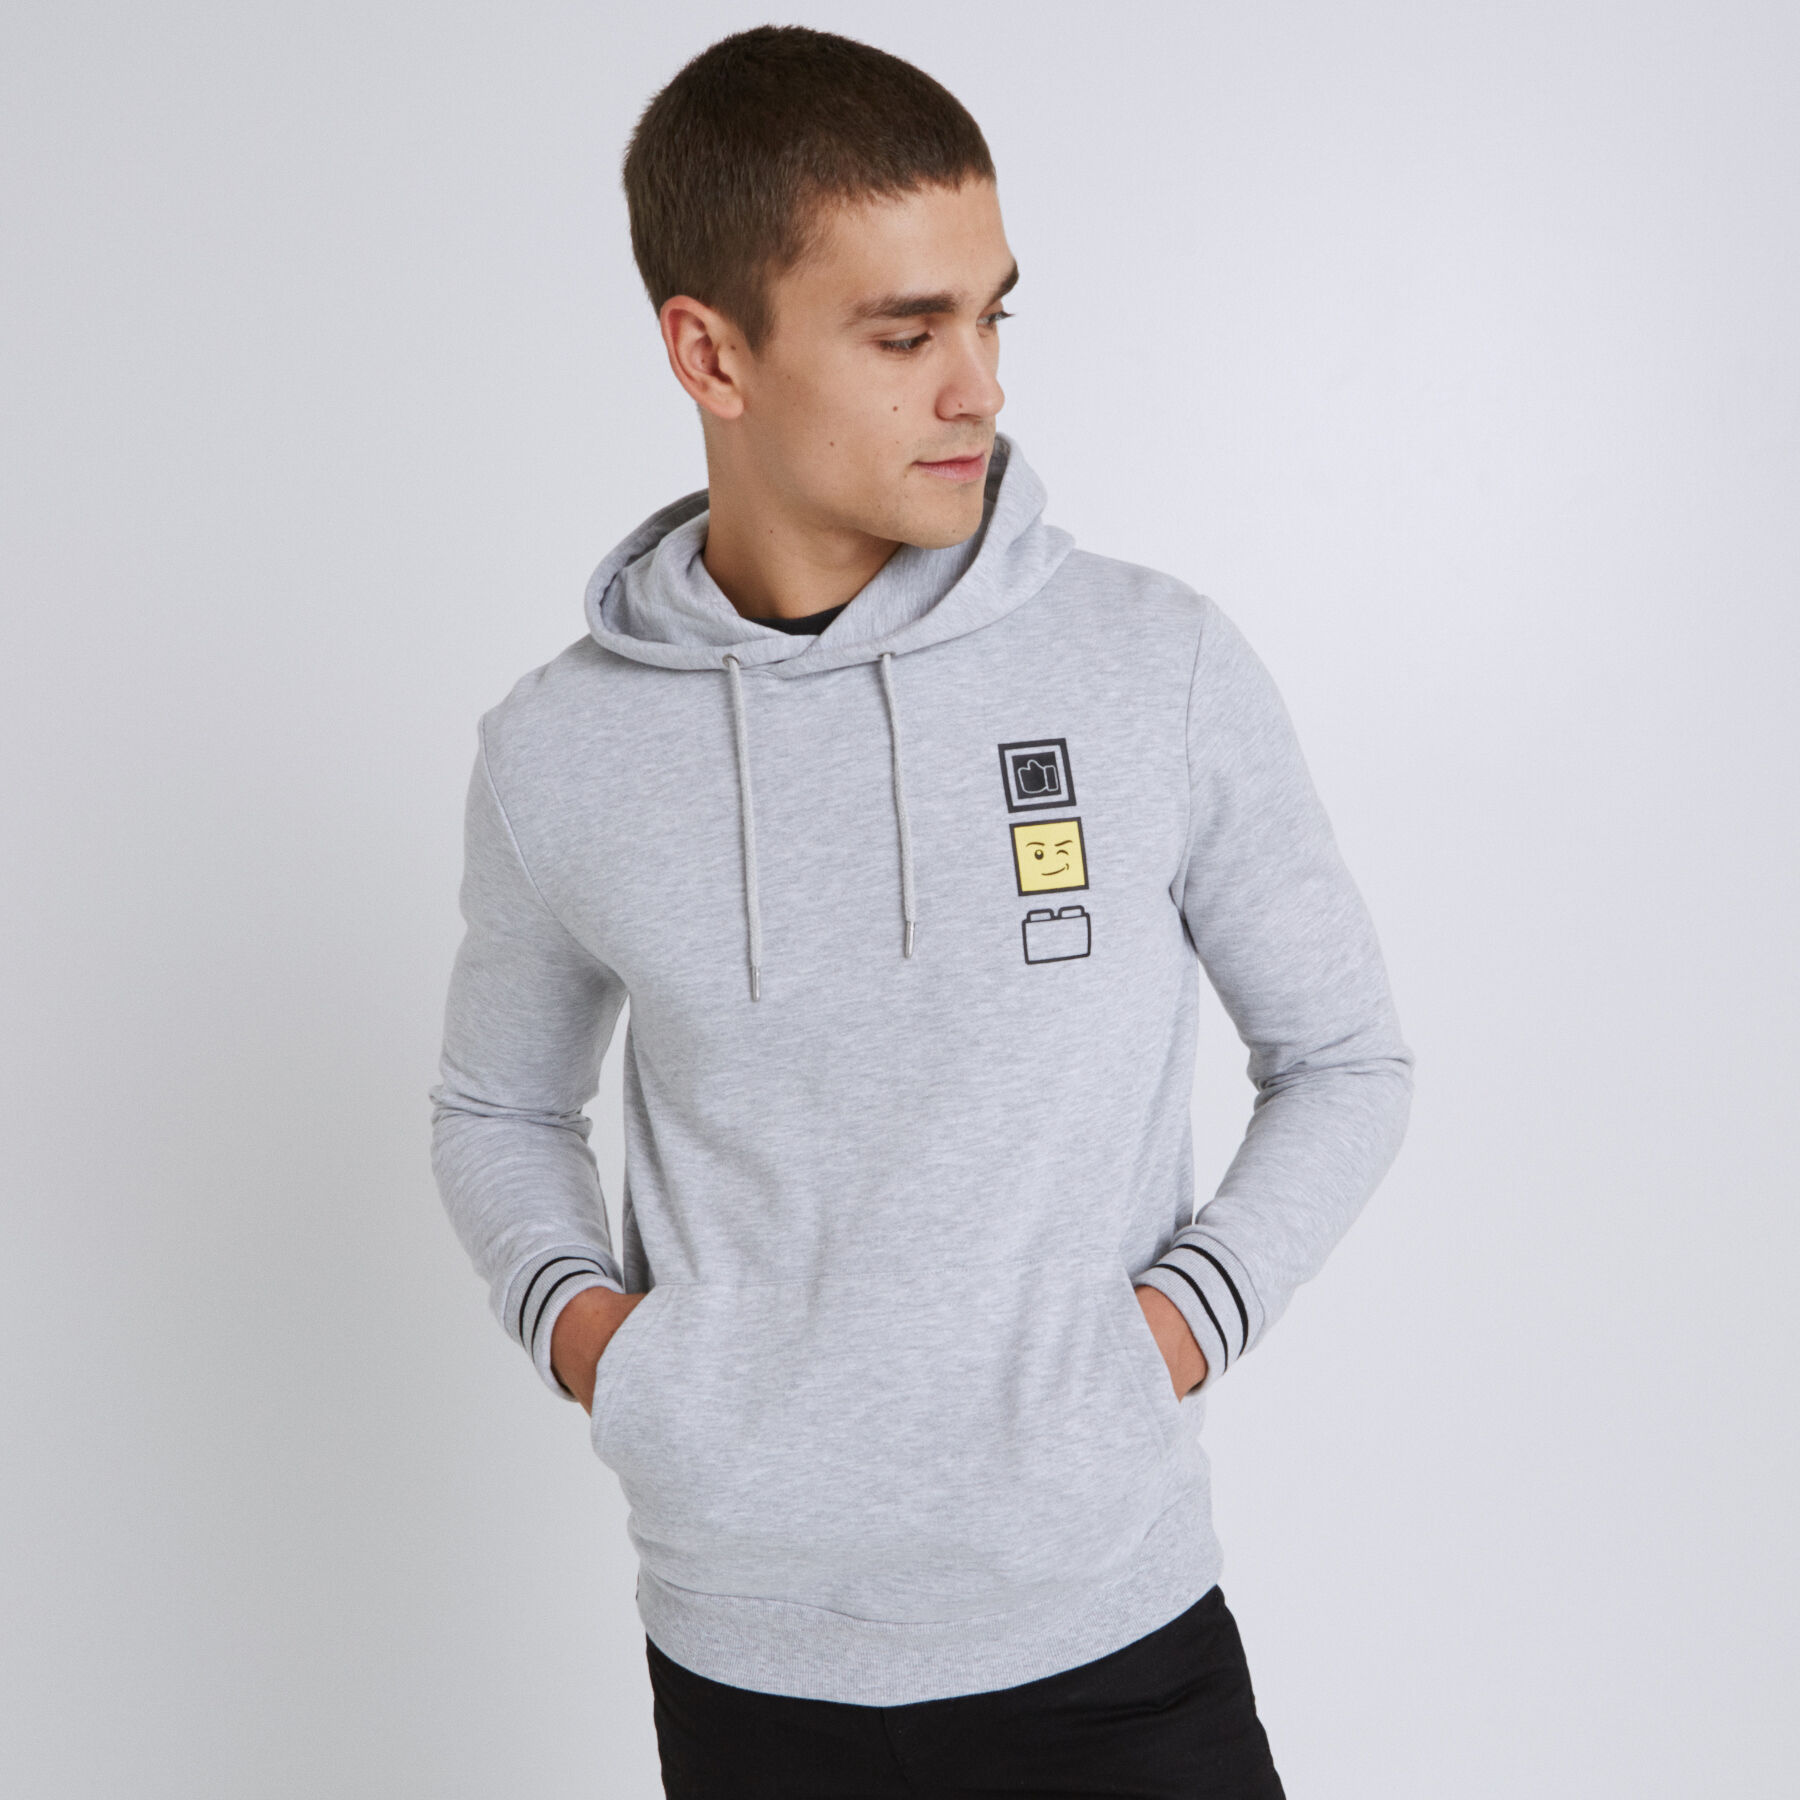 homme lego sweat capuche jules 2f57a3a98be1